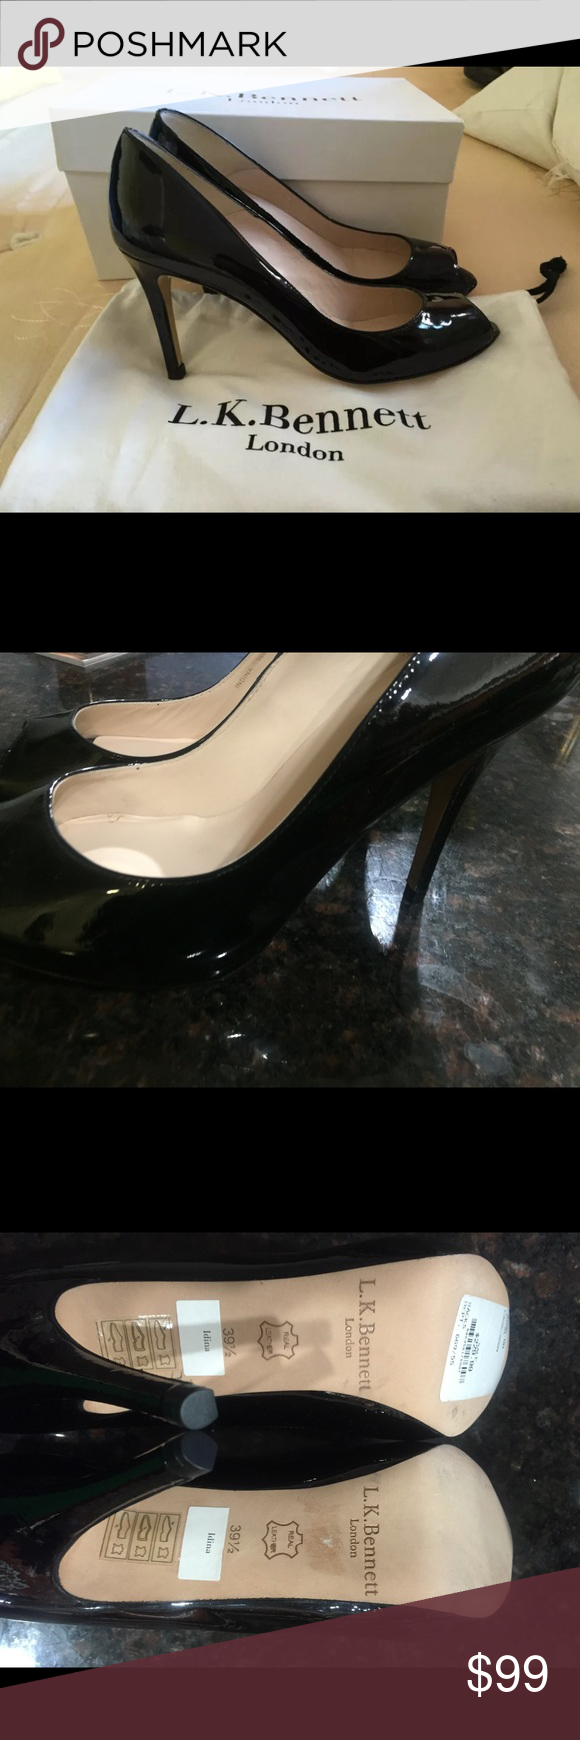 Brand New LK Bennett Peep Toe Pumps Perfect condition.  Too small for me, sadly. LK Bennett Shoes Heels